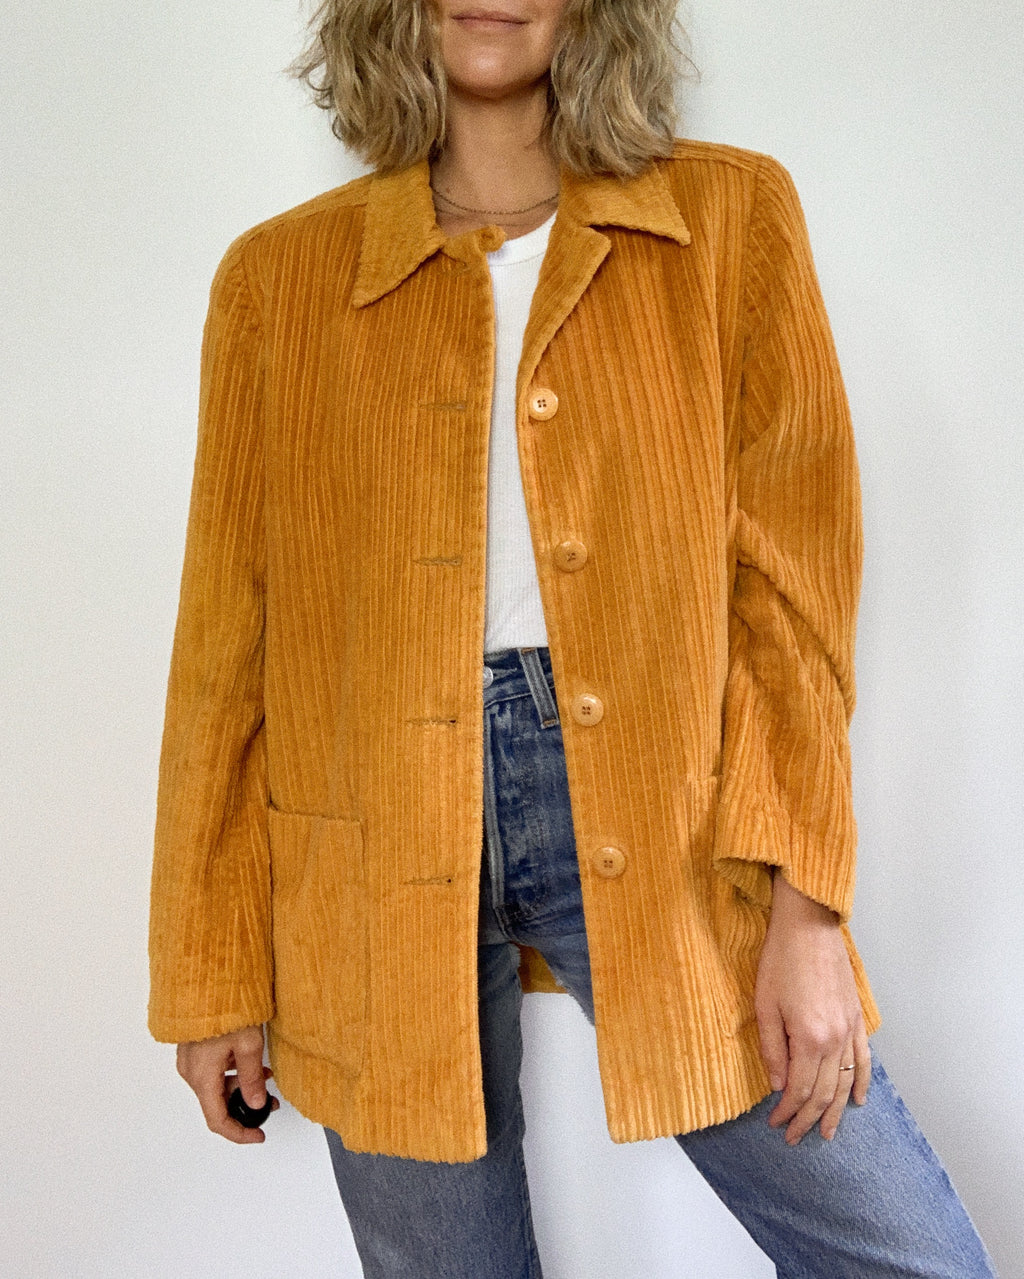 MUSTARD CORDUROY JACKET / MENS SMALL